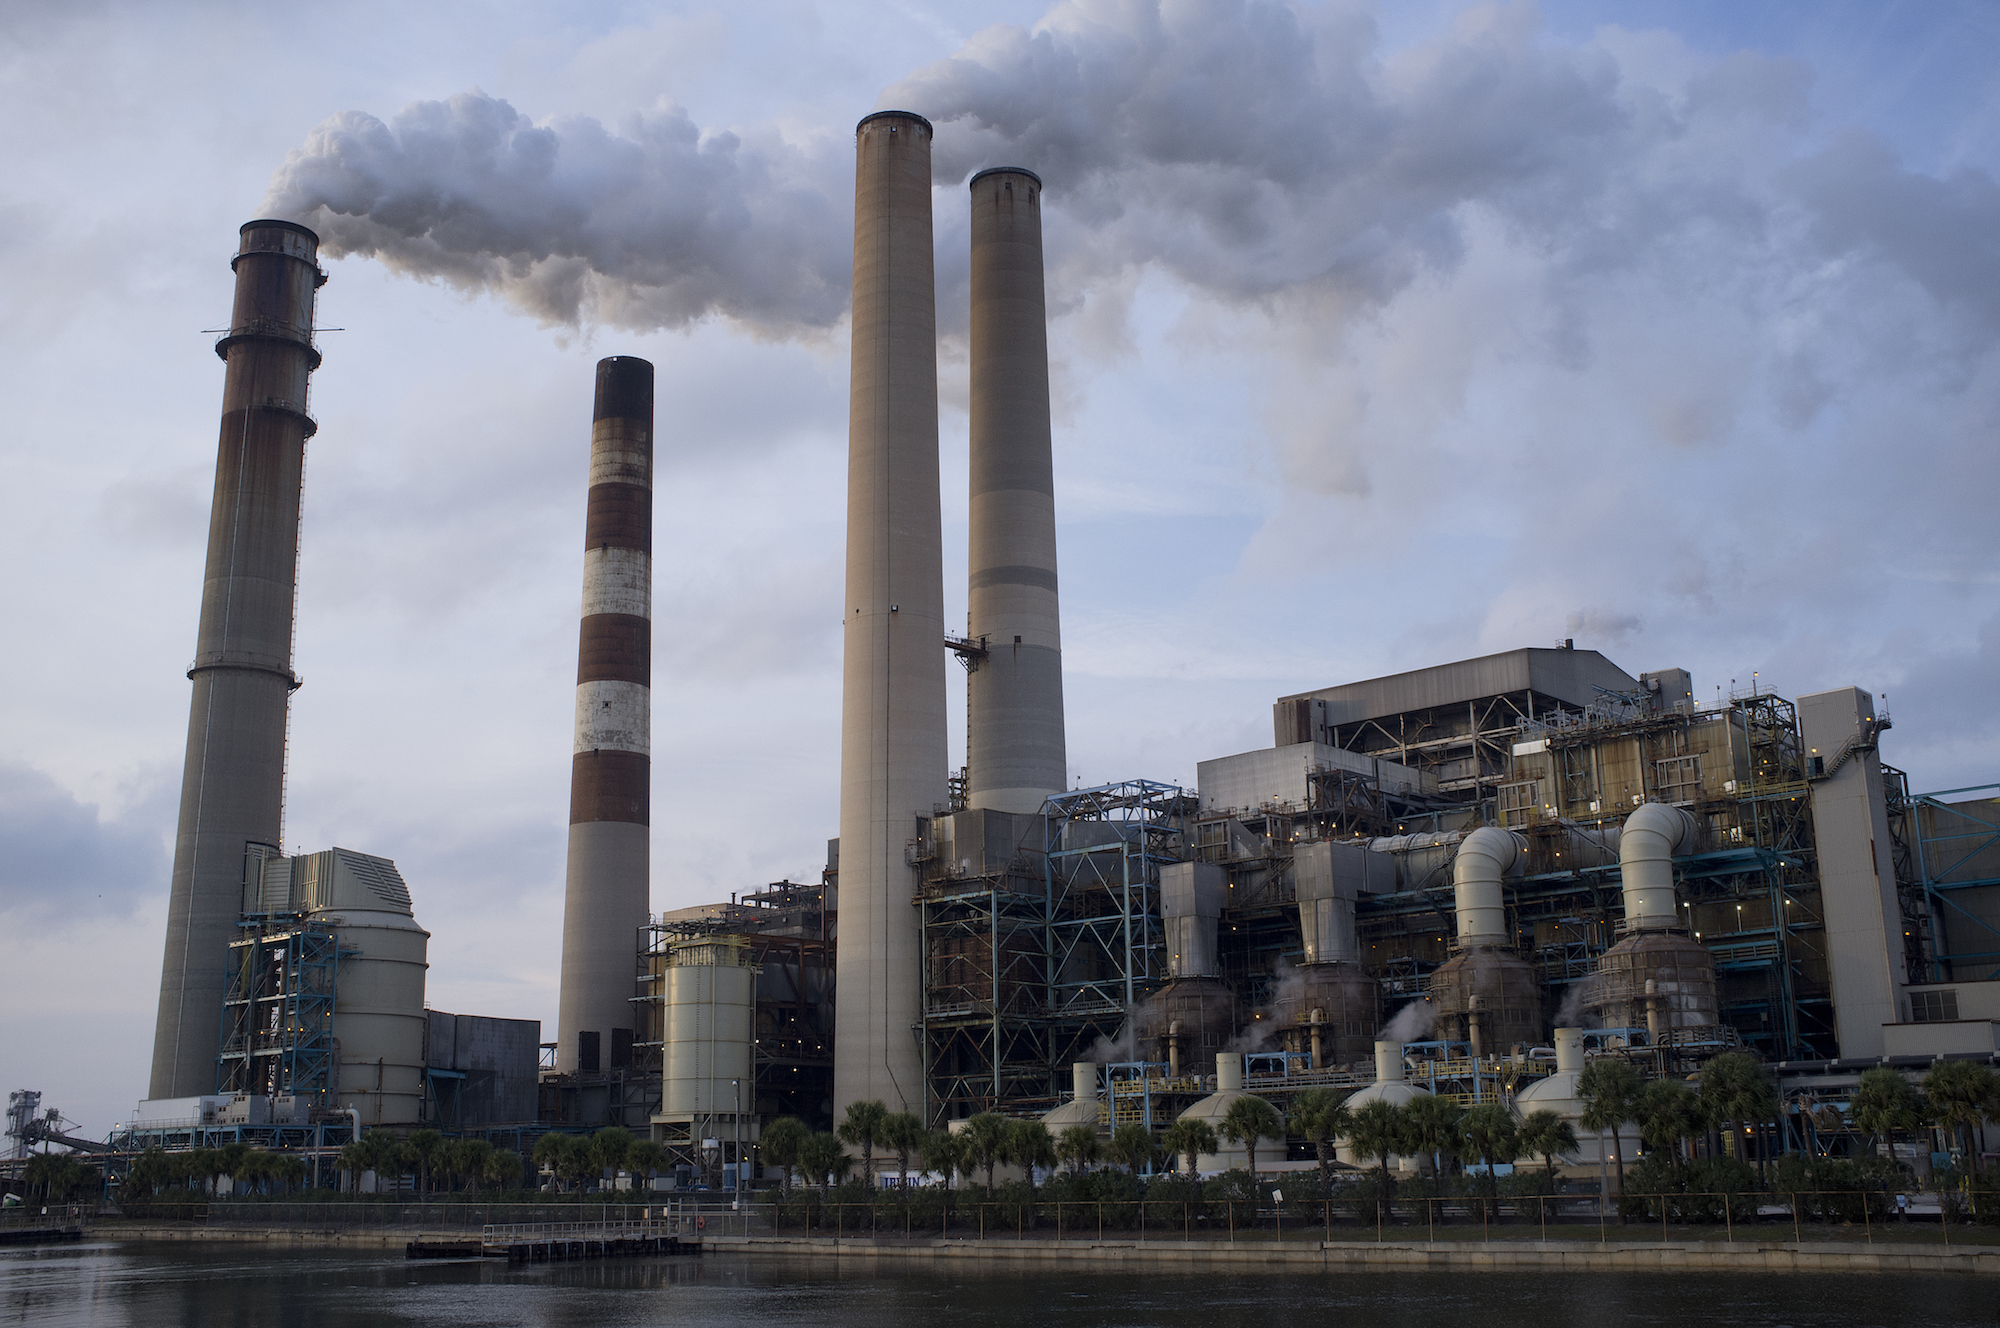 a large power plant with stacks spewing smoke